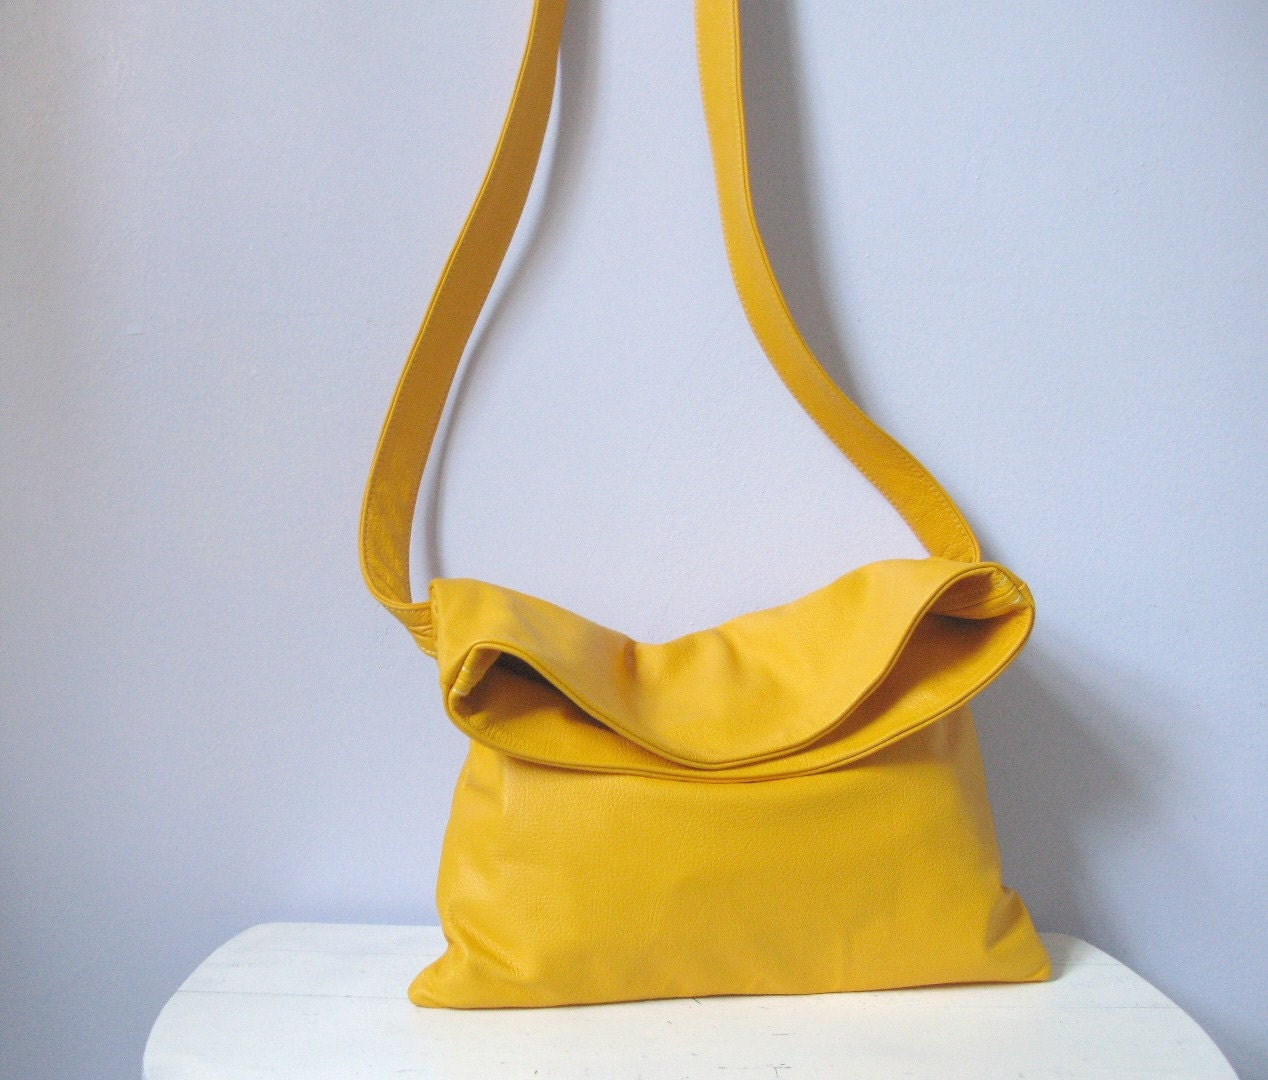 thisbe leather satchel messenger bag - school bus yellow by renneslechateau on Etsy from etsy.com